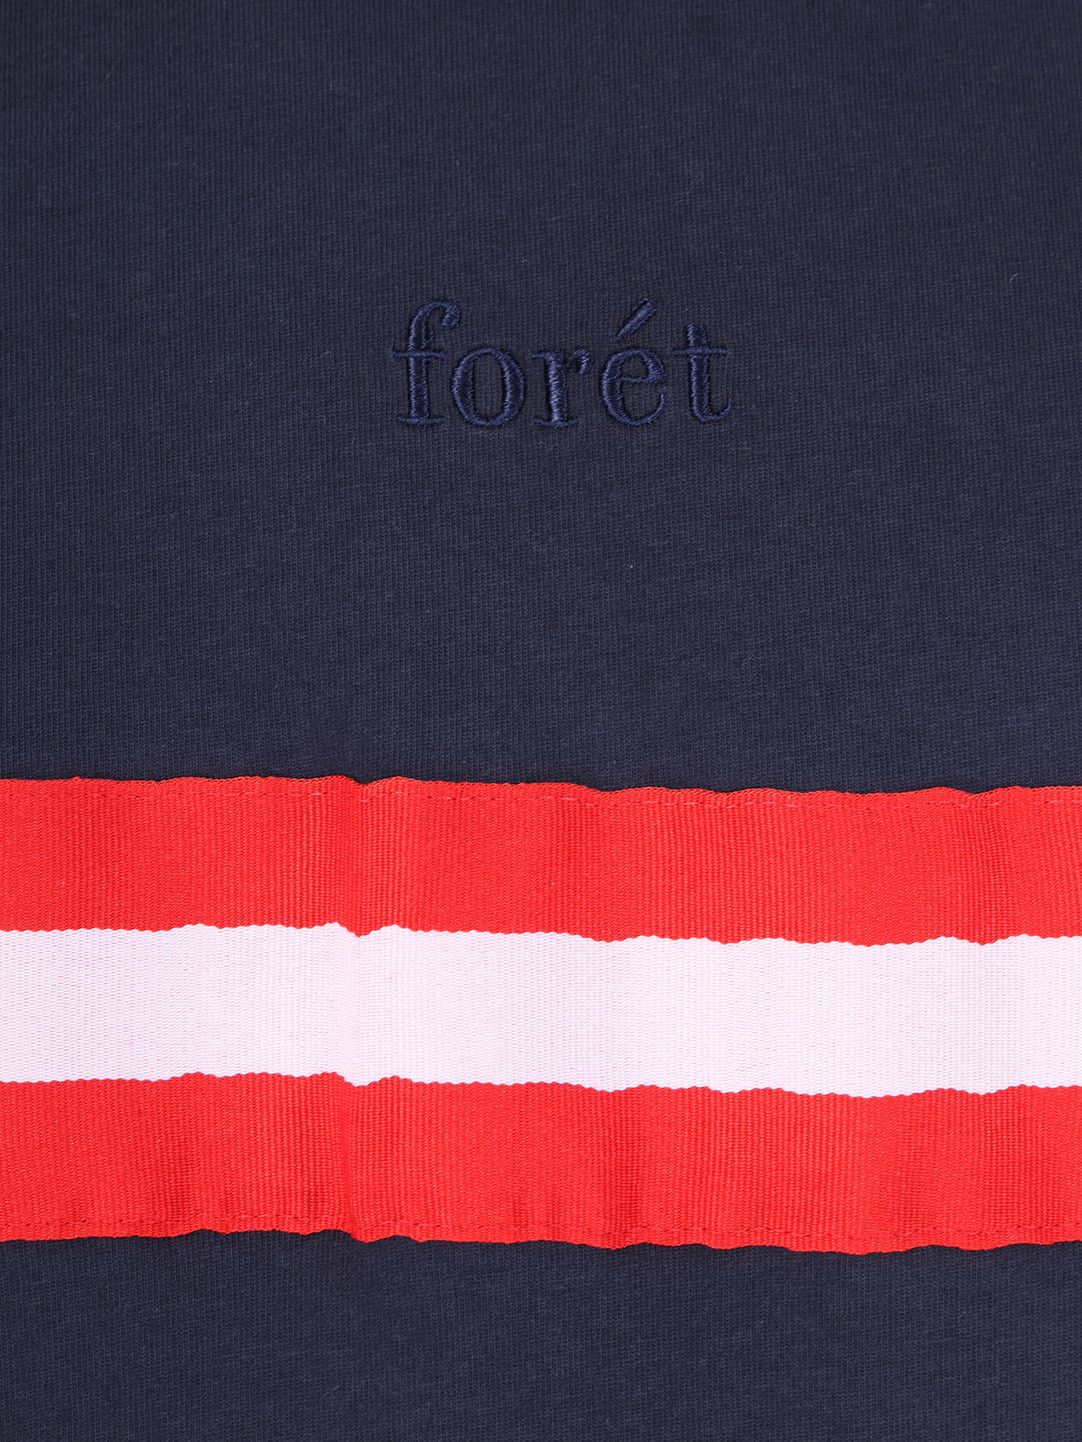 Foret Foret Eagle T-Shirt Midnight Blue F153